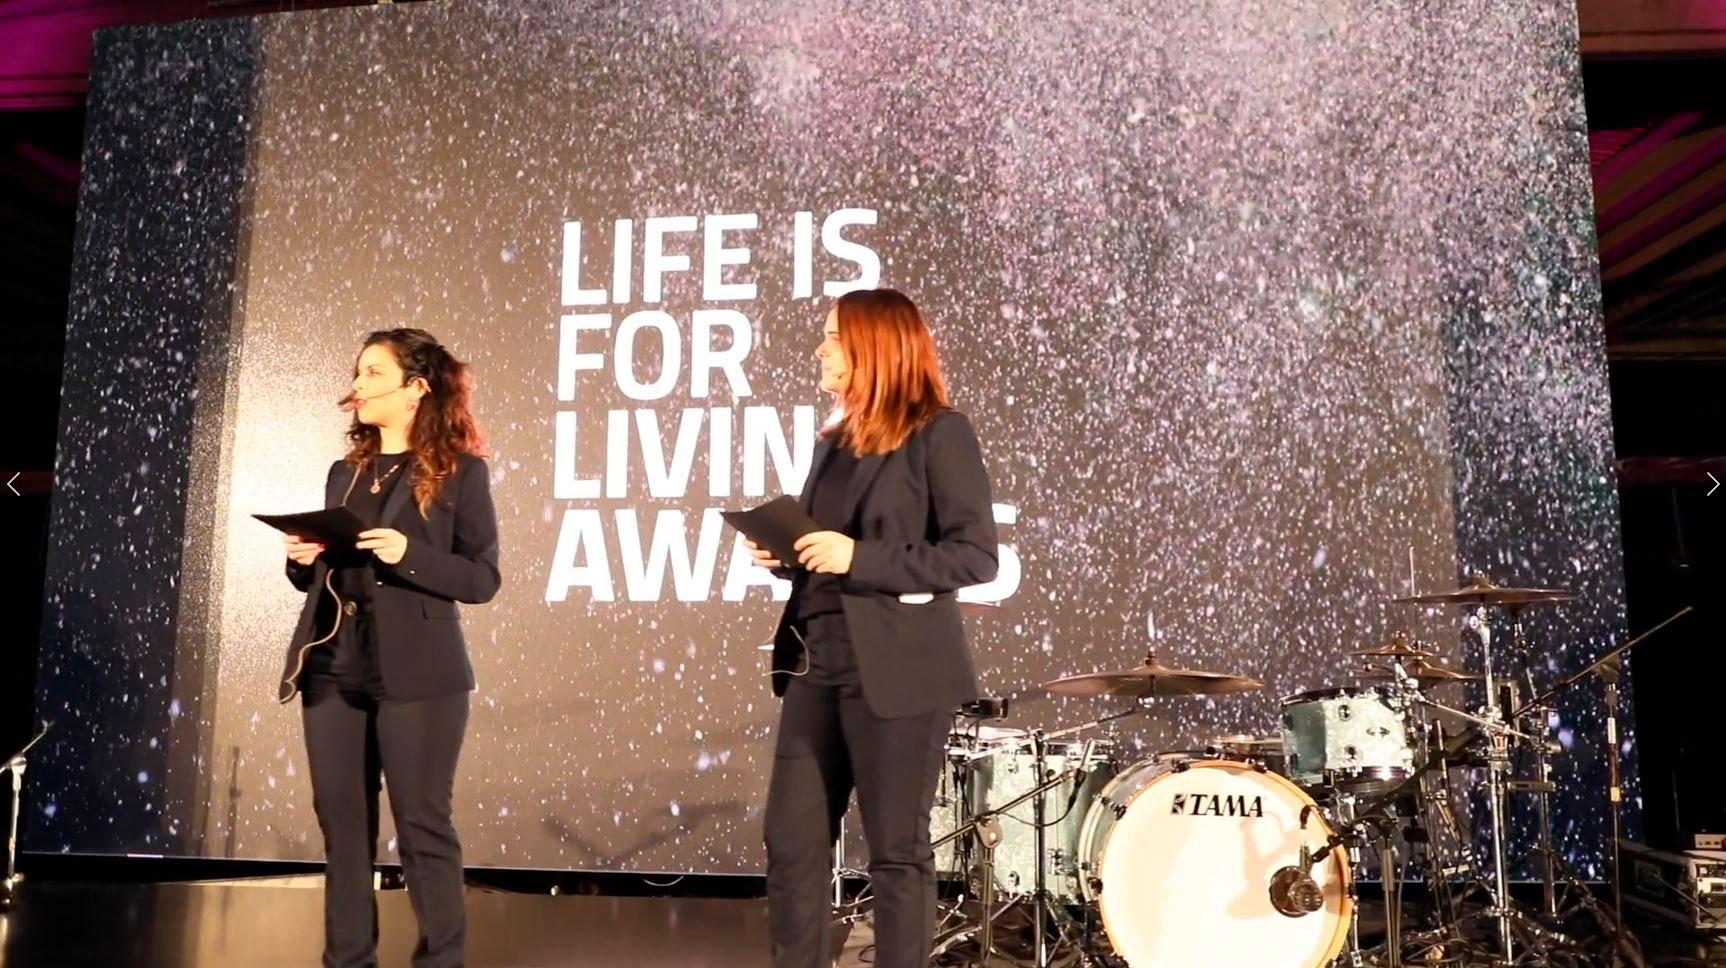 Life is For Living Awards, a magical evening from Living Ceramics